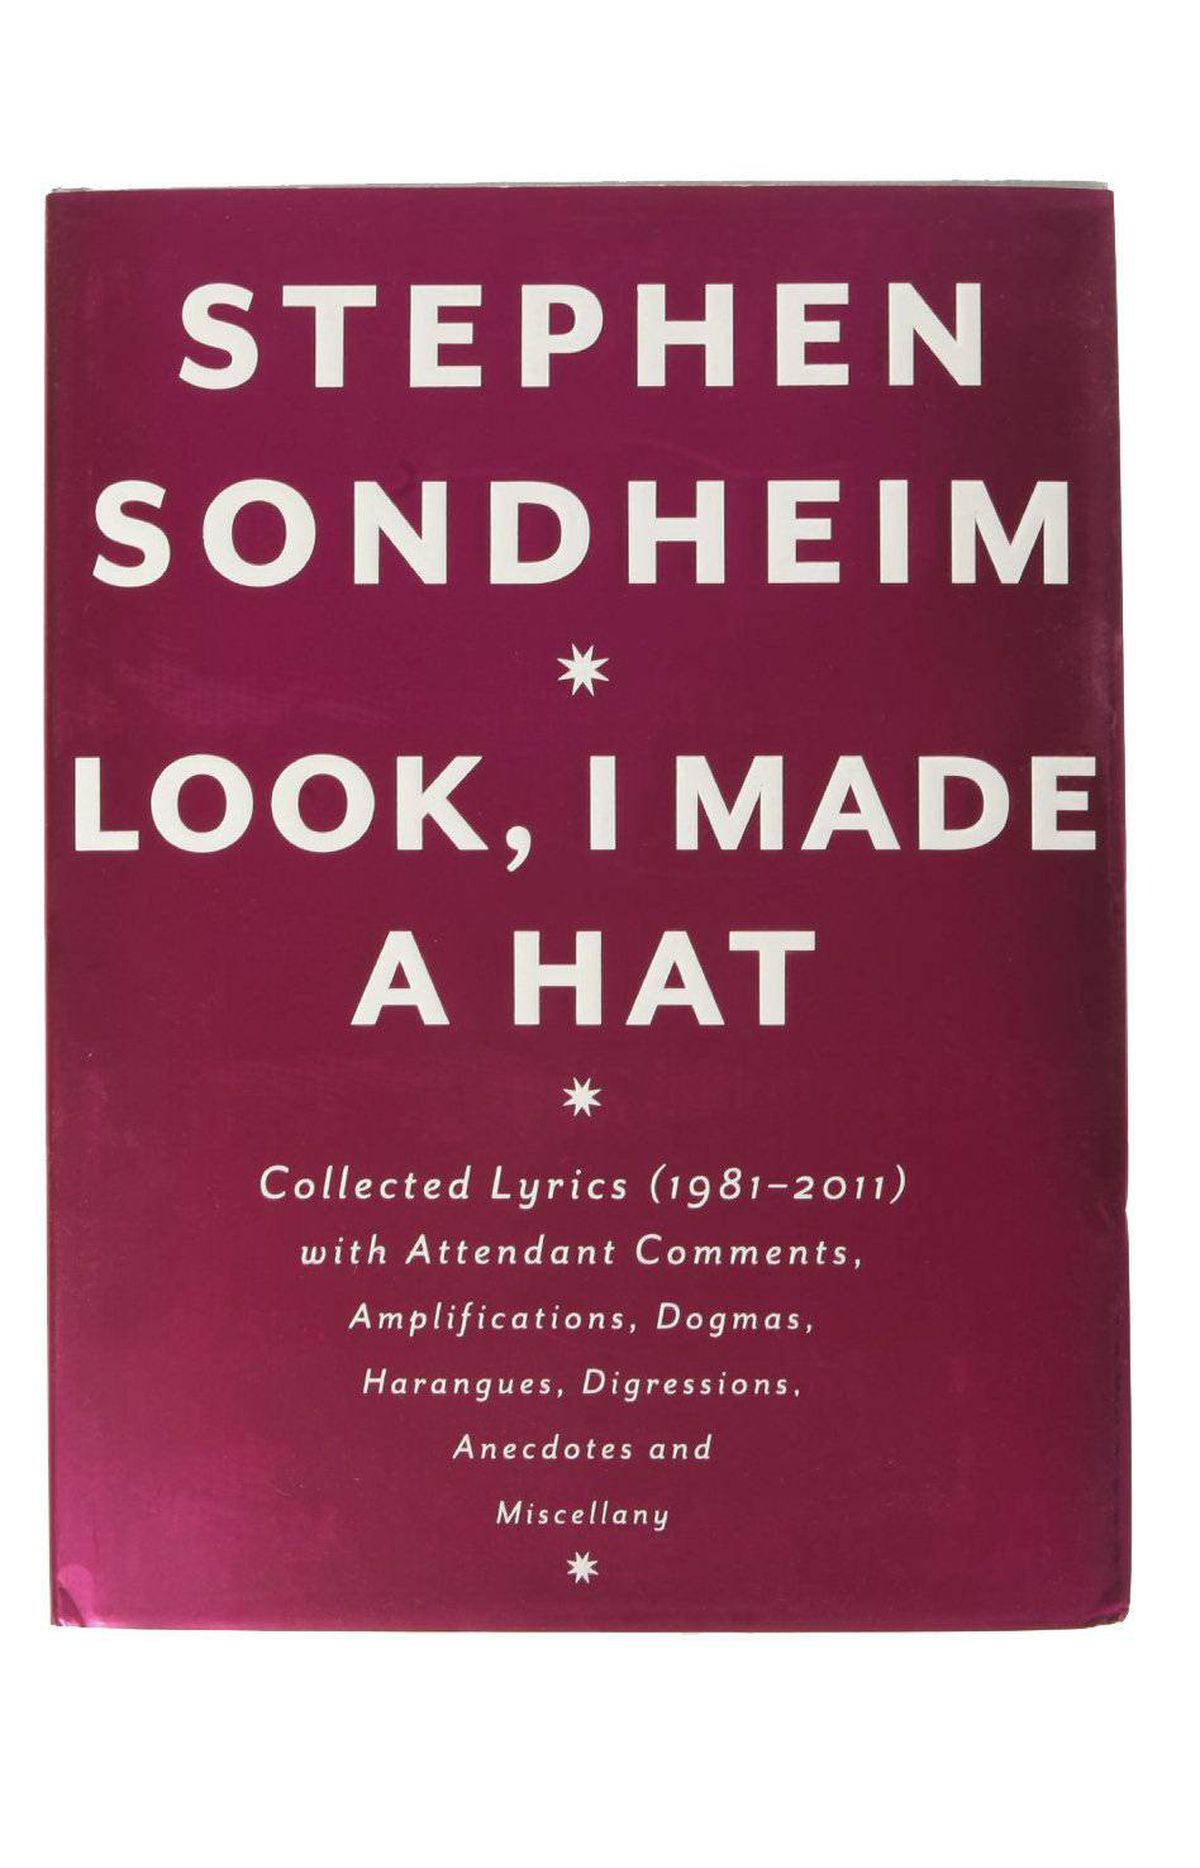 "Look, I Made a Hat: Collected Lyrics (1981-2011) by Stephen Sondheim The second volume of Sondheim's collected lyrics covers a period that includes Assassins, Passion and his Pulitzer winner, Sunday in the Park with George (from which the title of the book derives). As with the initial volume, which was on most Broadway babies' holiday lists last year, the sequel's ""Comments, Amplifications, Dogmas, Harangues, Digressions, Anecdotes and Miscellany"" are the best part. Learn what Sondheim really thinks of critics, award ceremonies and the ""torturous evolution"" of Road Show, to use his latest musical's latest name. $50 at theatrebooks.com"